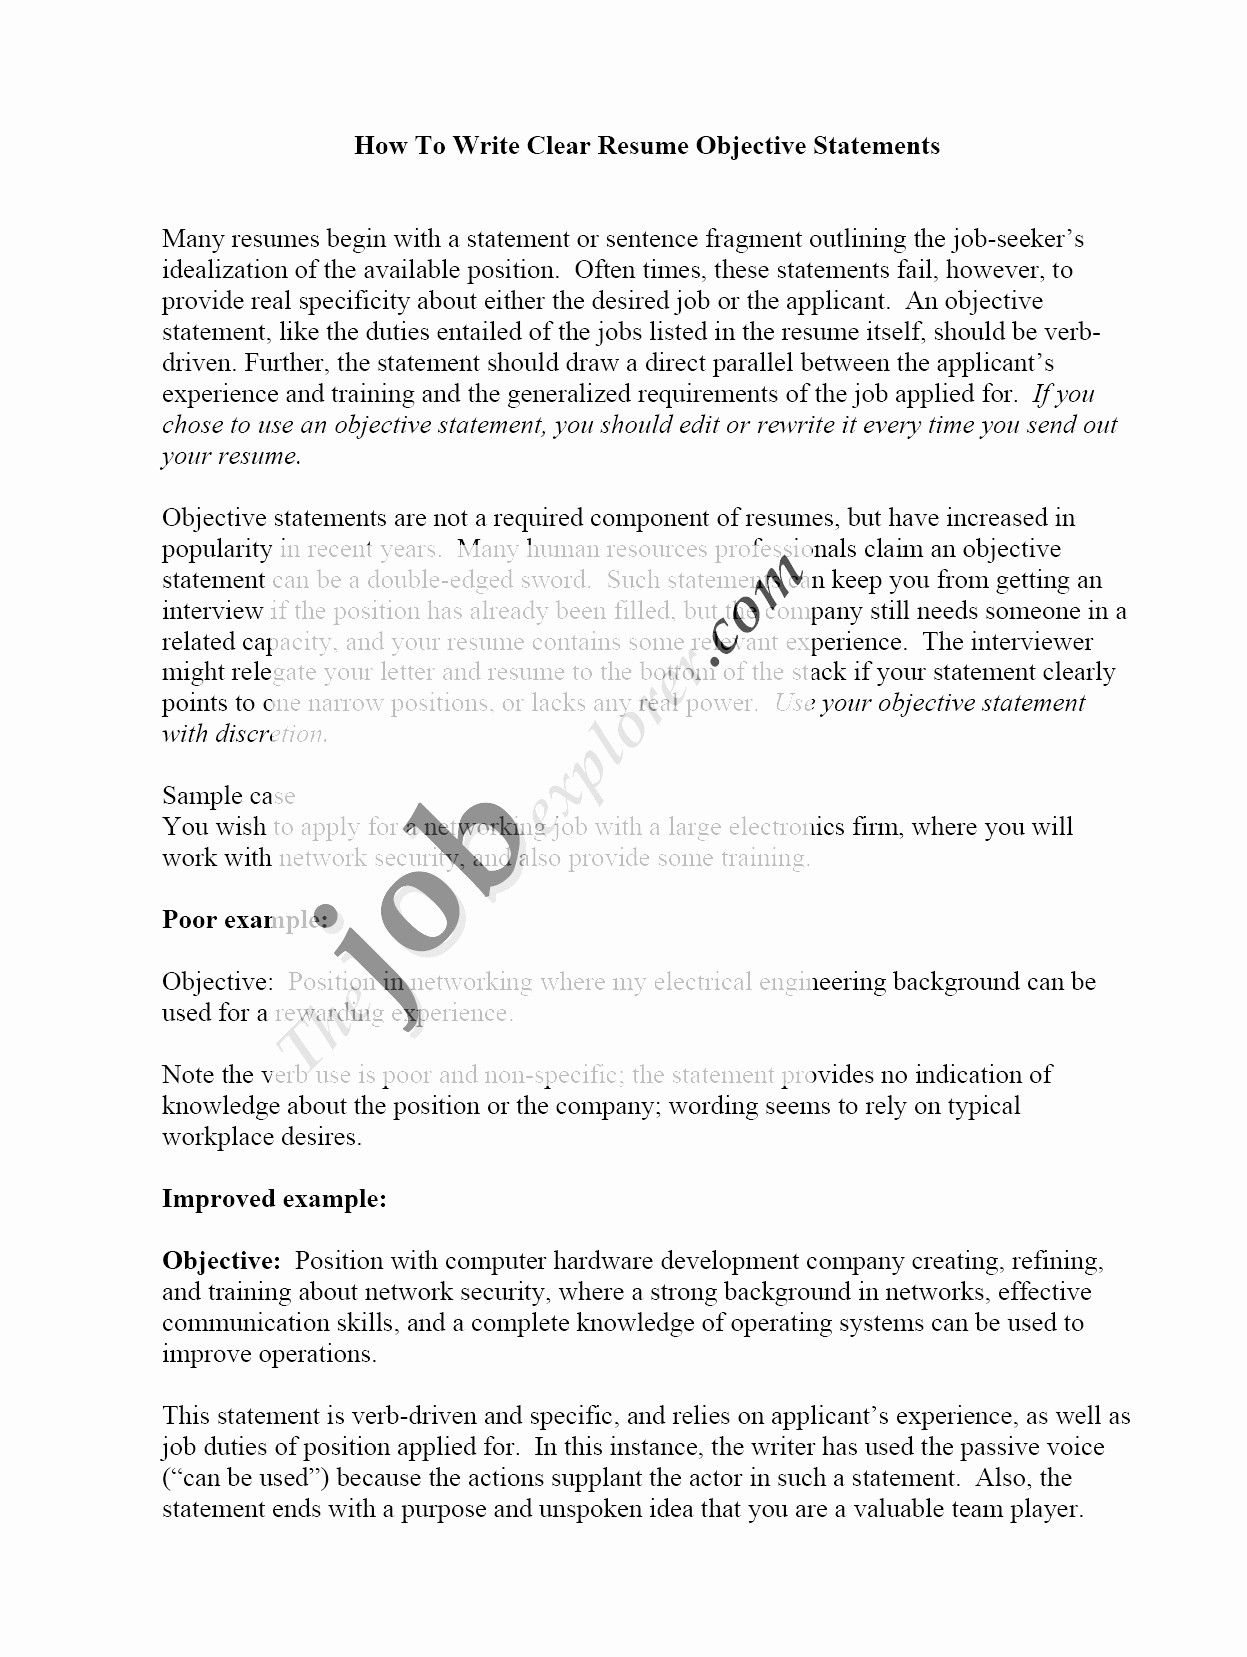 Career Change Resume Sample 69 Awesome Photos Of Career Change Resume Profile Statement